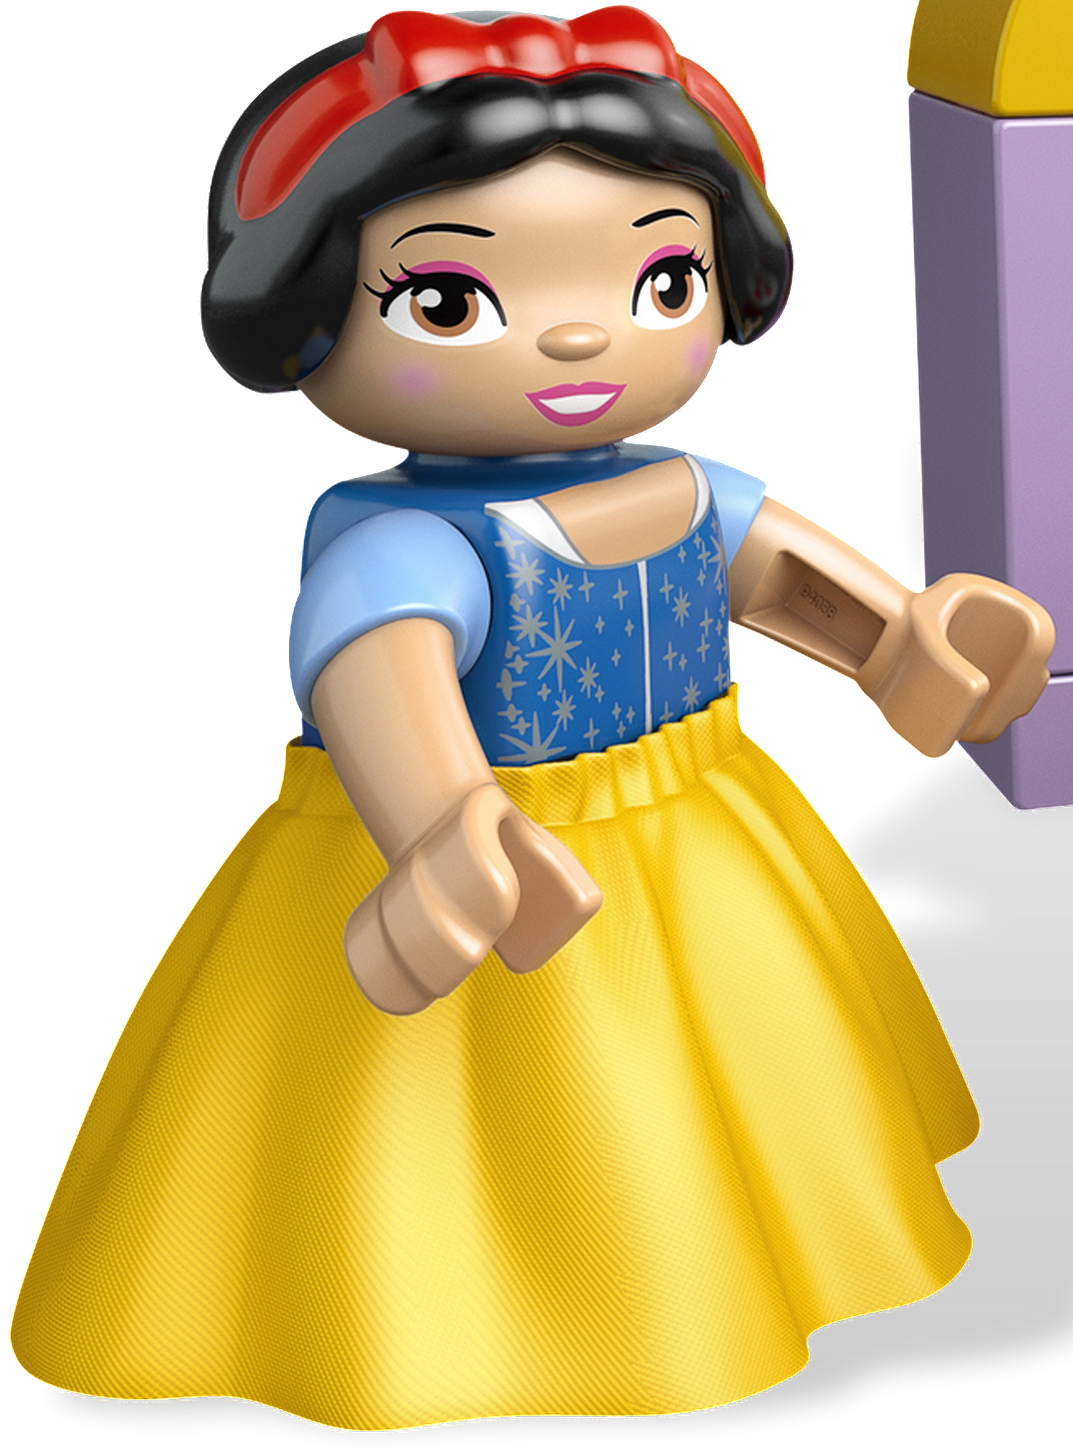 Snow White (Duplo) | Brickipedia | FANDOM powered by Wikia